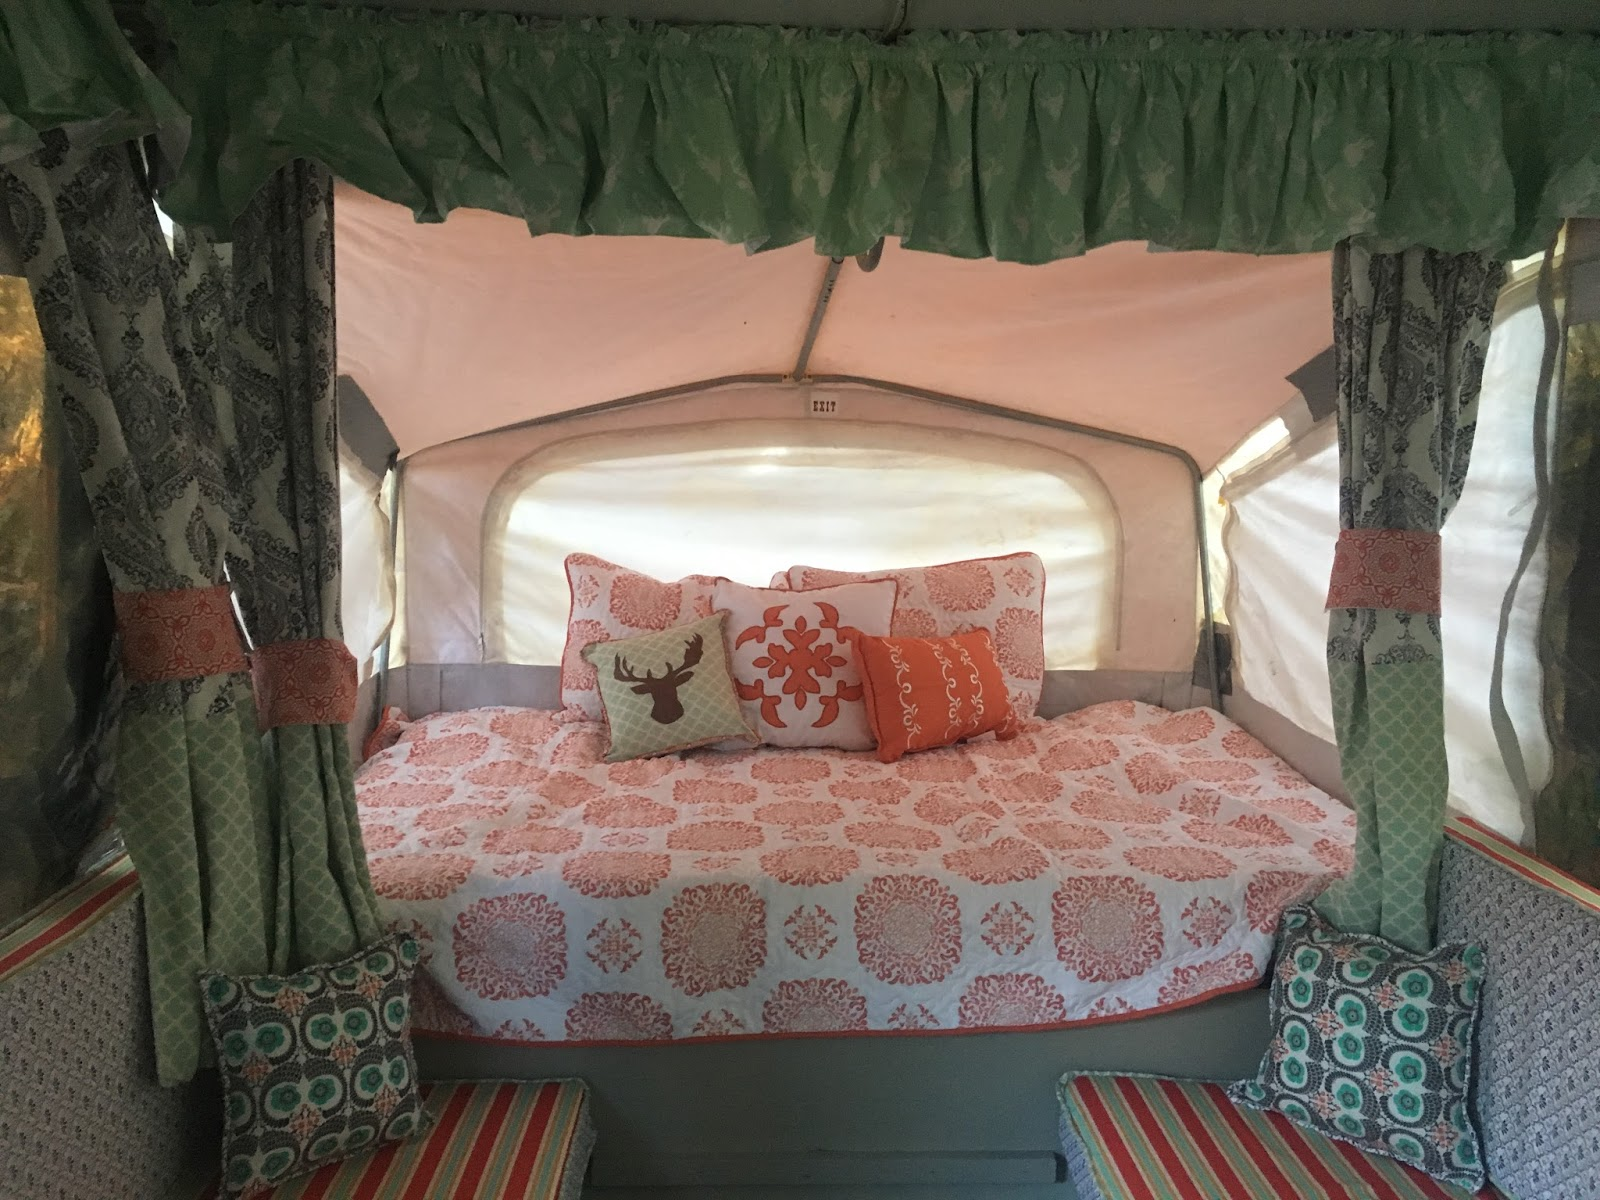 The Southern Glamper Replacing A Pop Up Camper Mattress